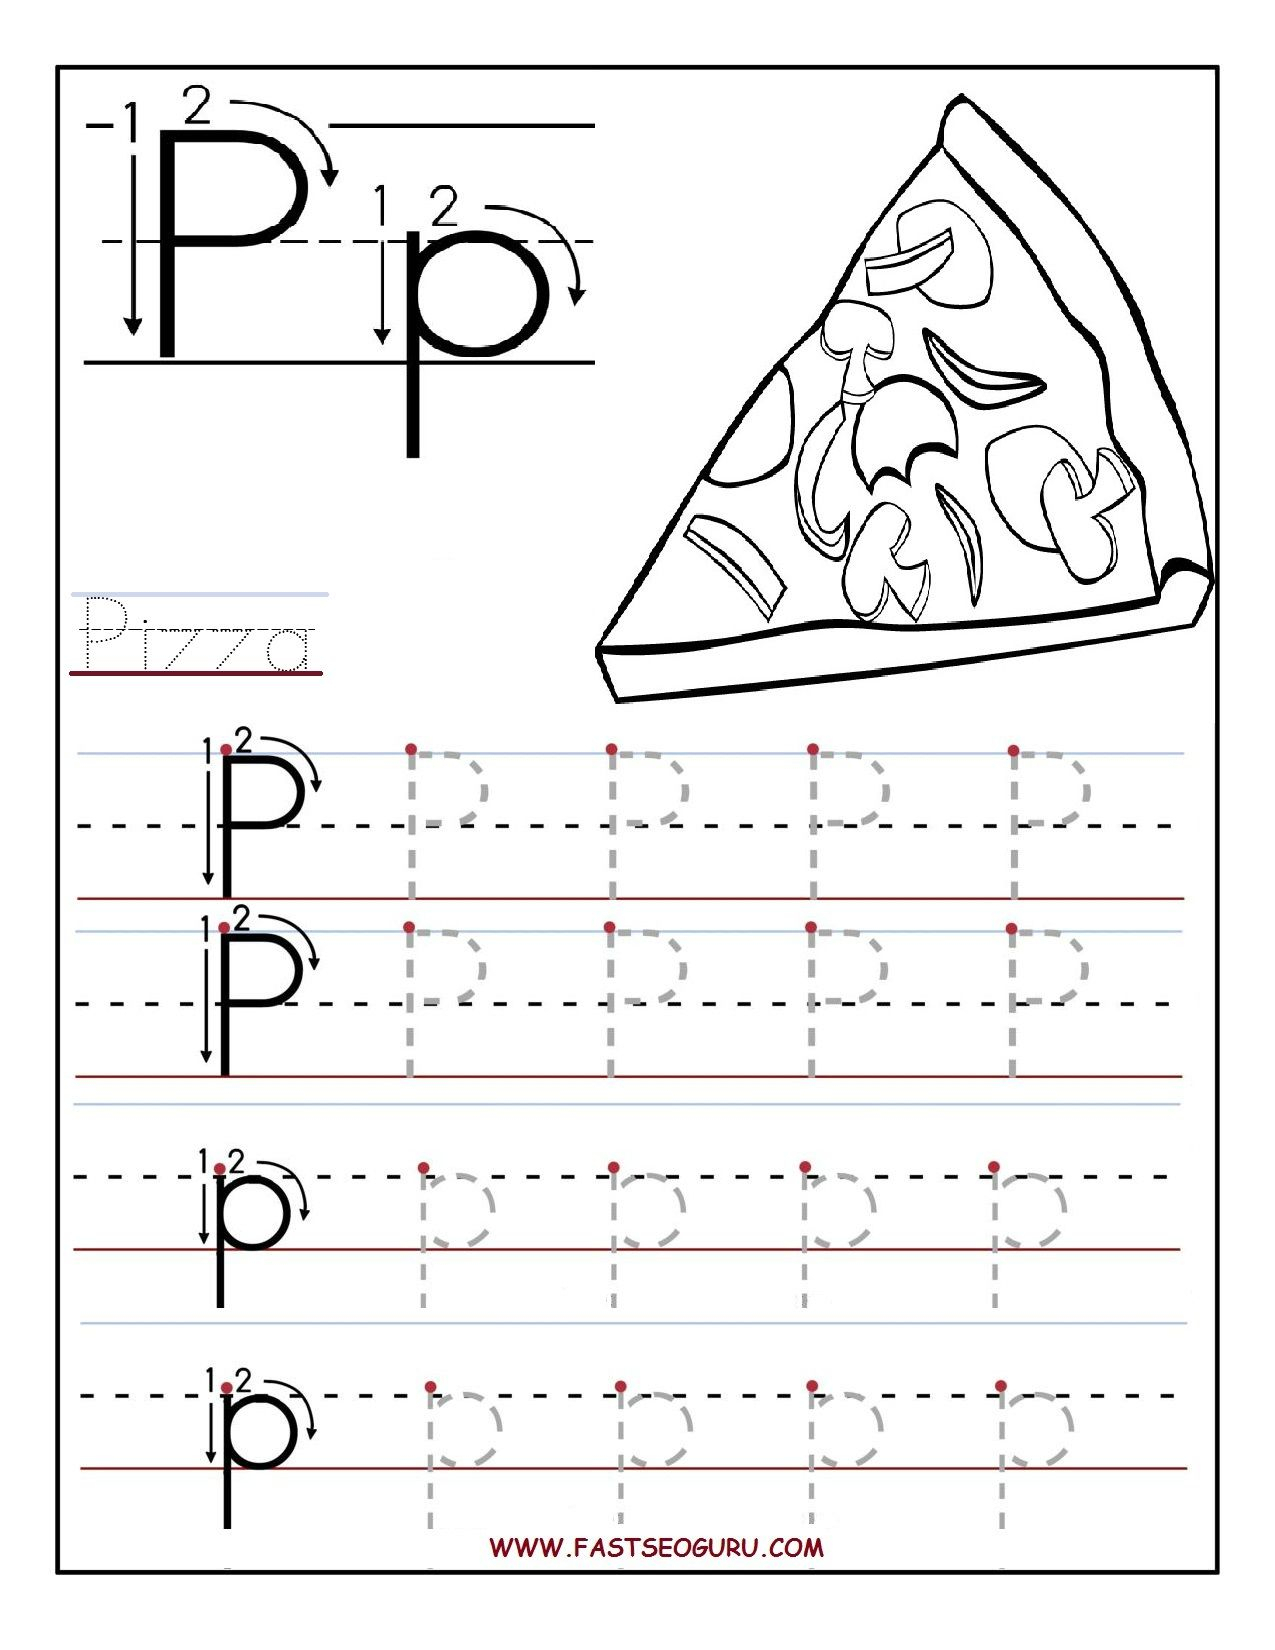 Printable Letter P Tracing Worksheets For Preschool intended for Tracing Letter P Worksheets